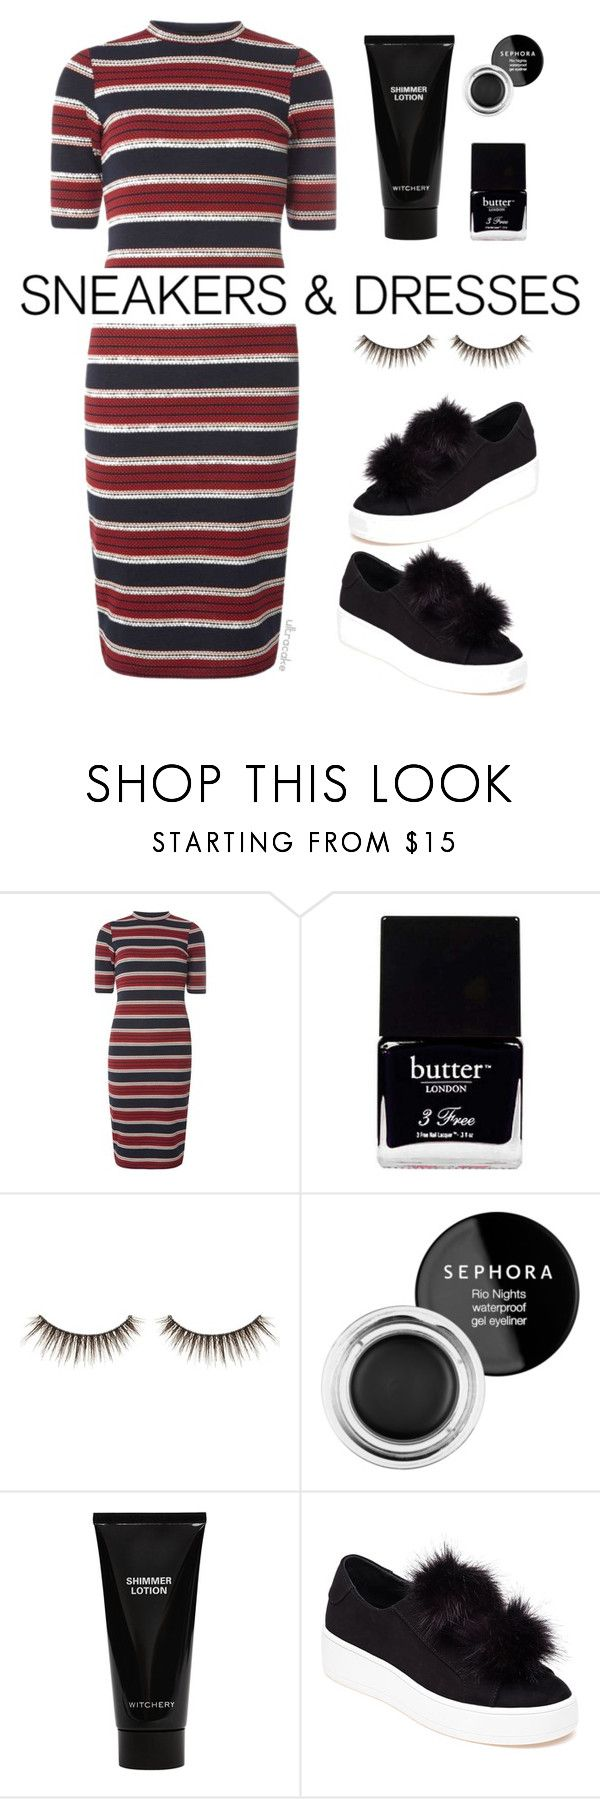 """""""Sneakers & Dresses"""" by ultracake ❤ liked on Polyvore featuring Dorothy Perkins, Butter London, shu uemura, Sephora Collection, Witchery, Steve Madden, fashiontrend, ultracake and SNEAKERSANDDRESSES"""